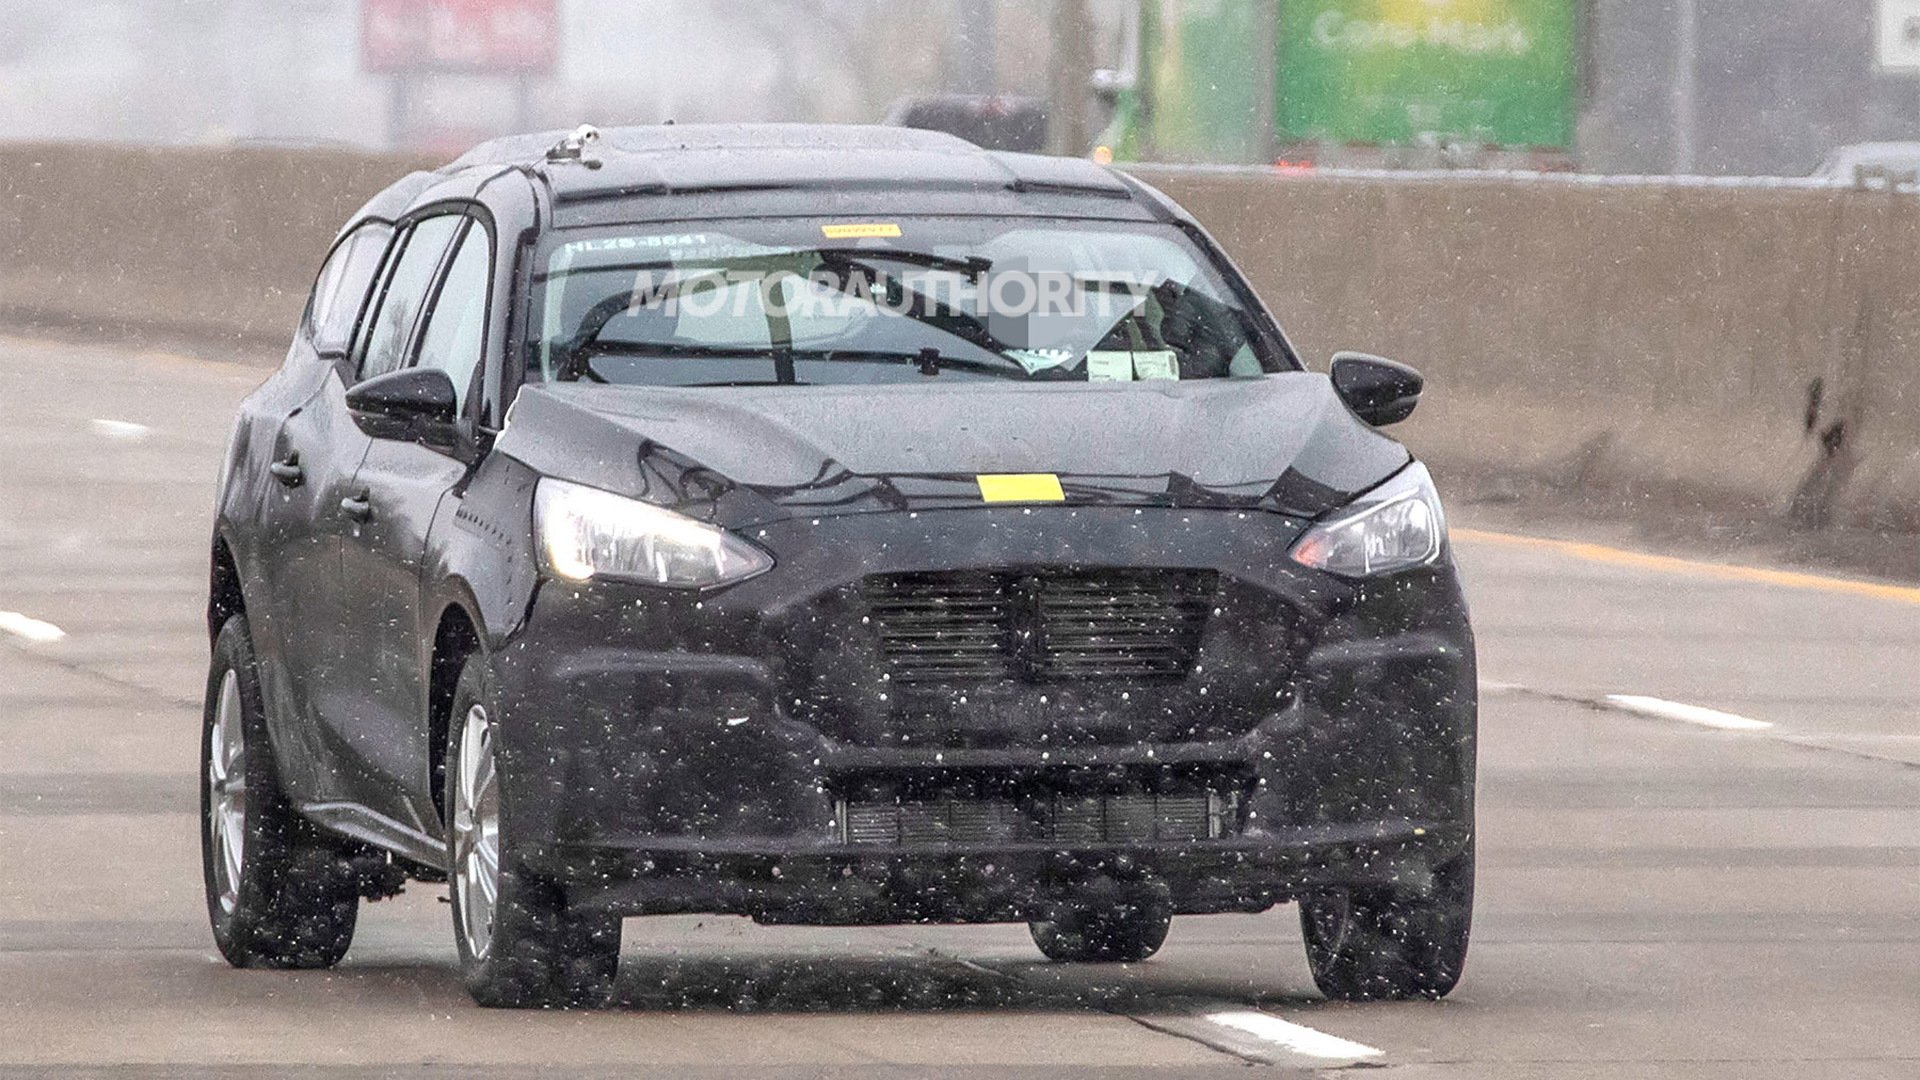 2022 Ford Transit Connect test mule spy shots - Photo credit: S. Baldauf/SB-Medien